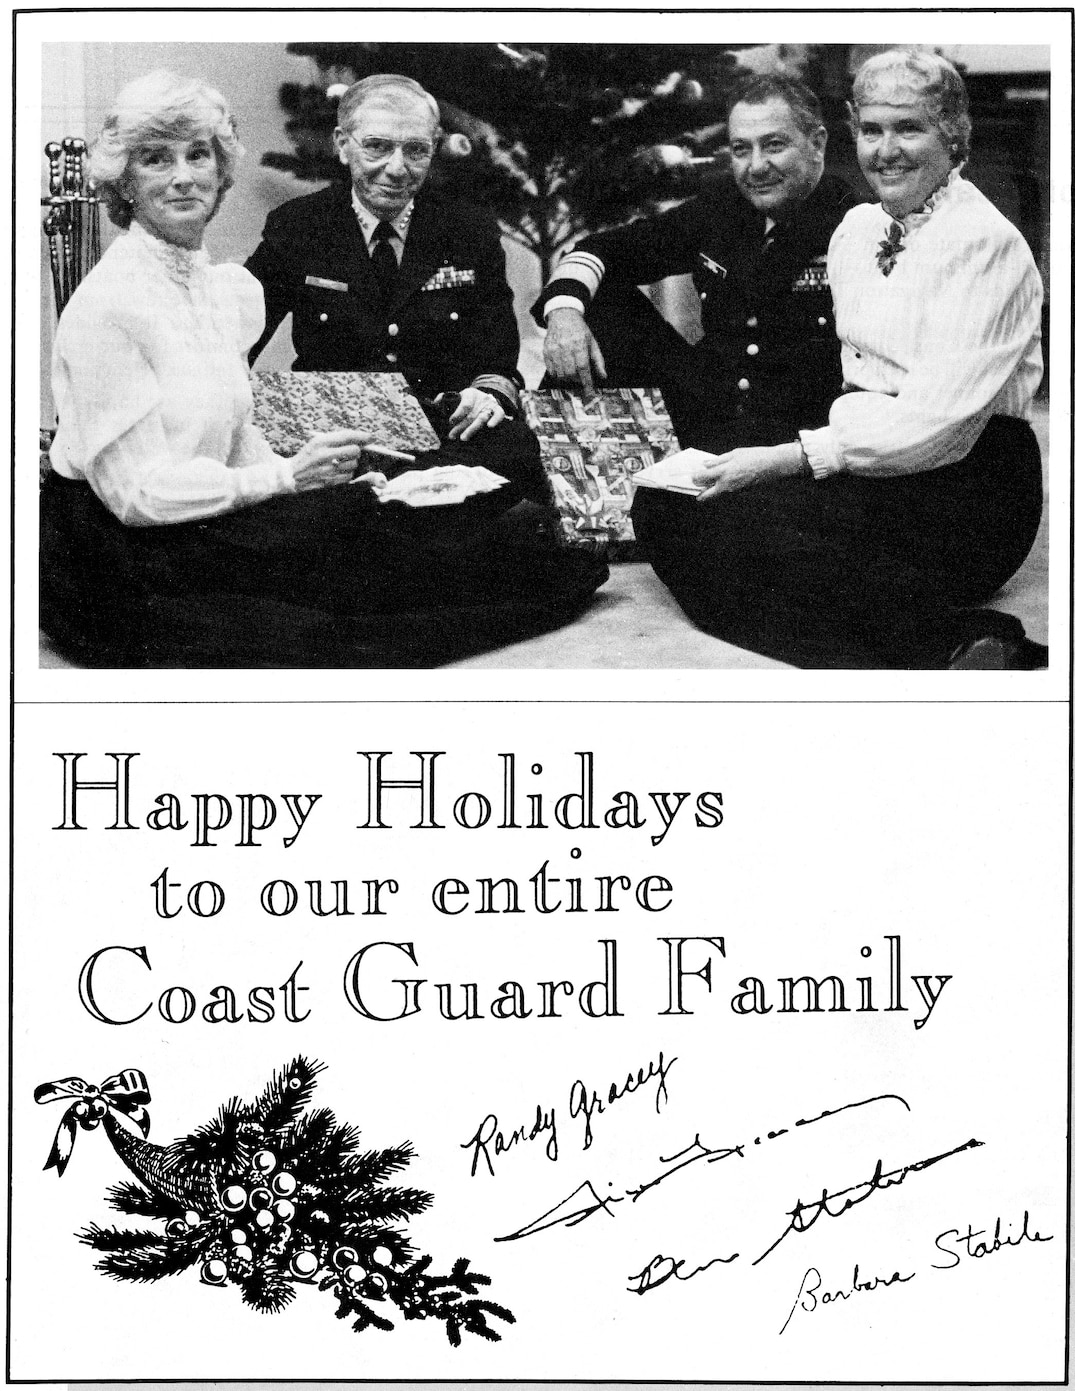 Admiral Gracey's 1984 Christmas Card to the Coast Guard Family.